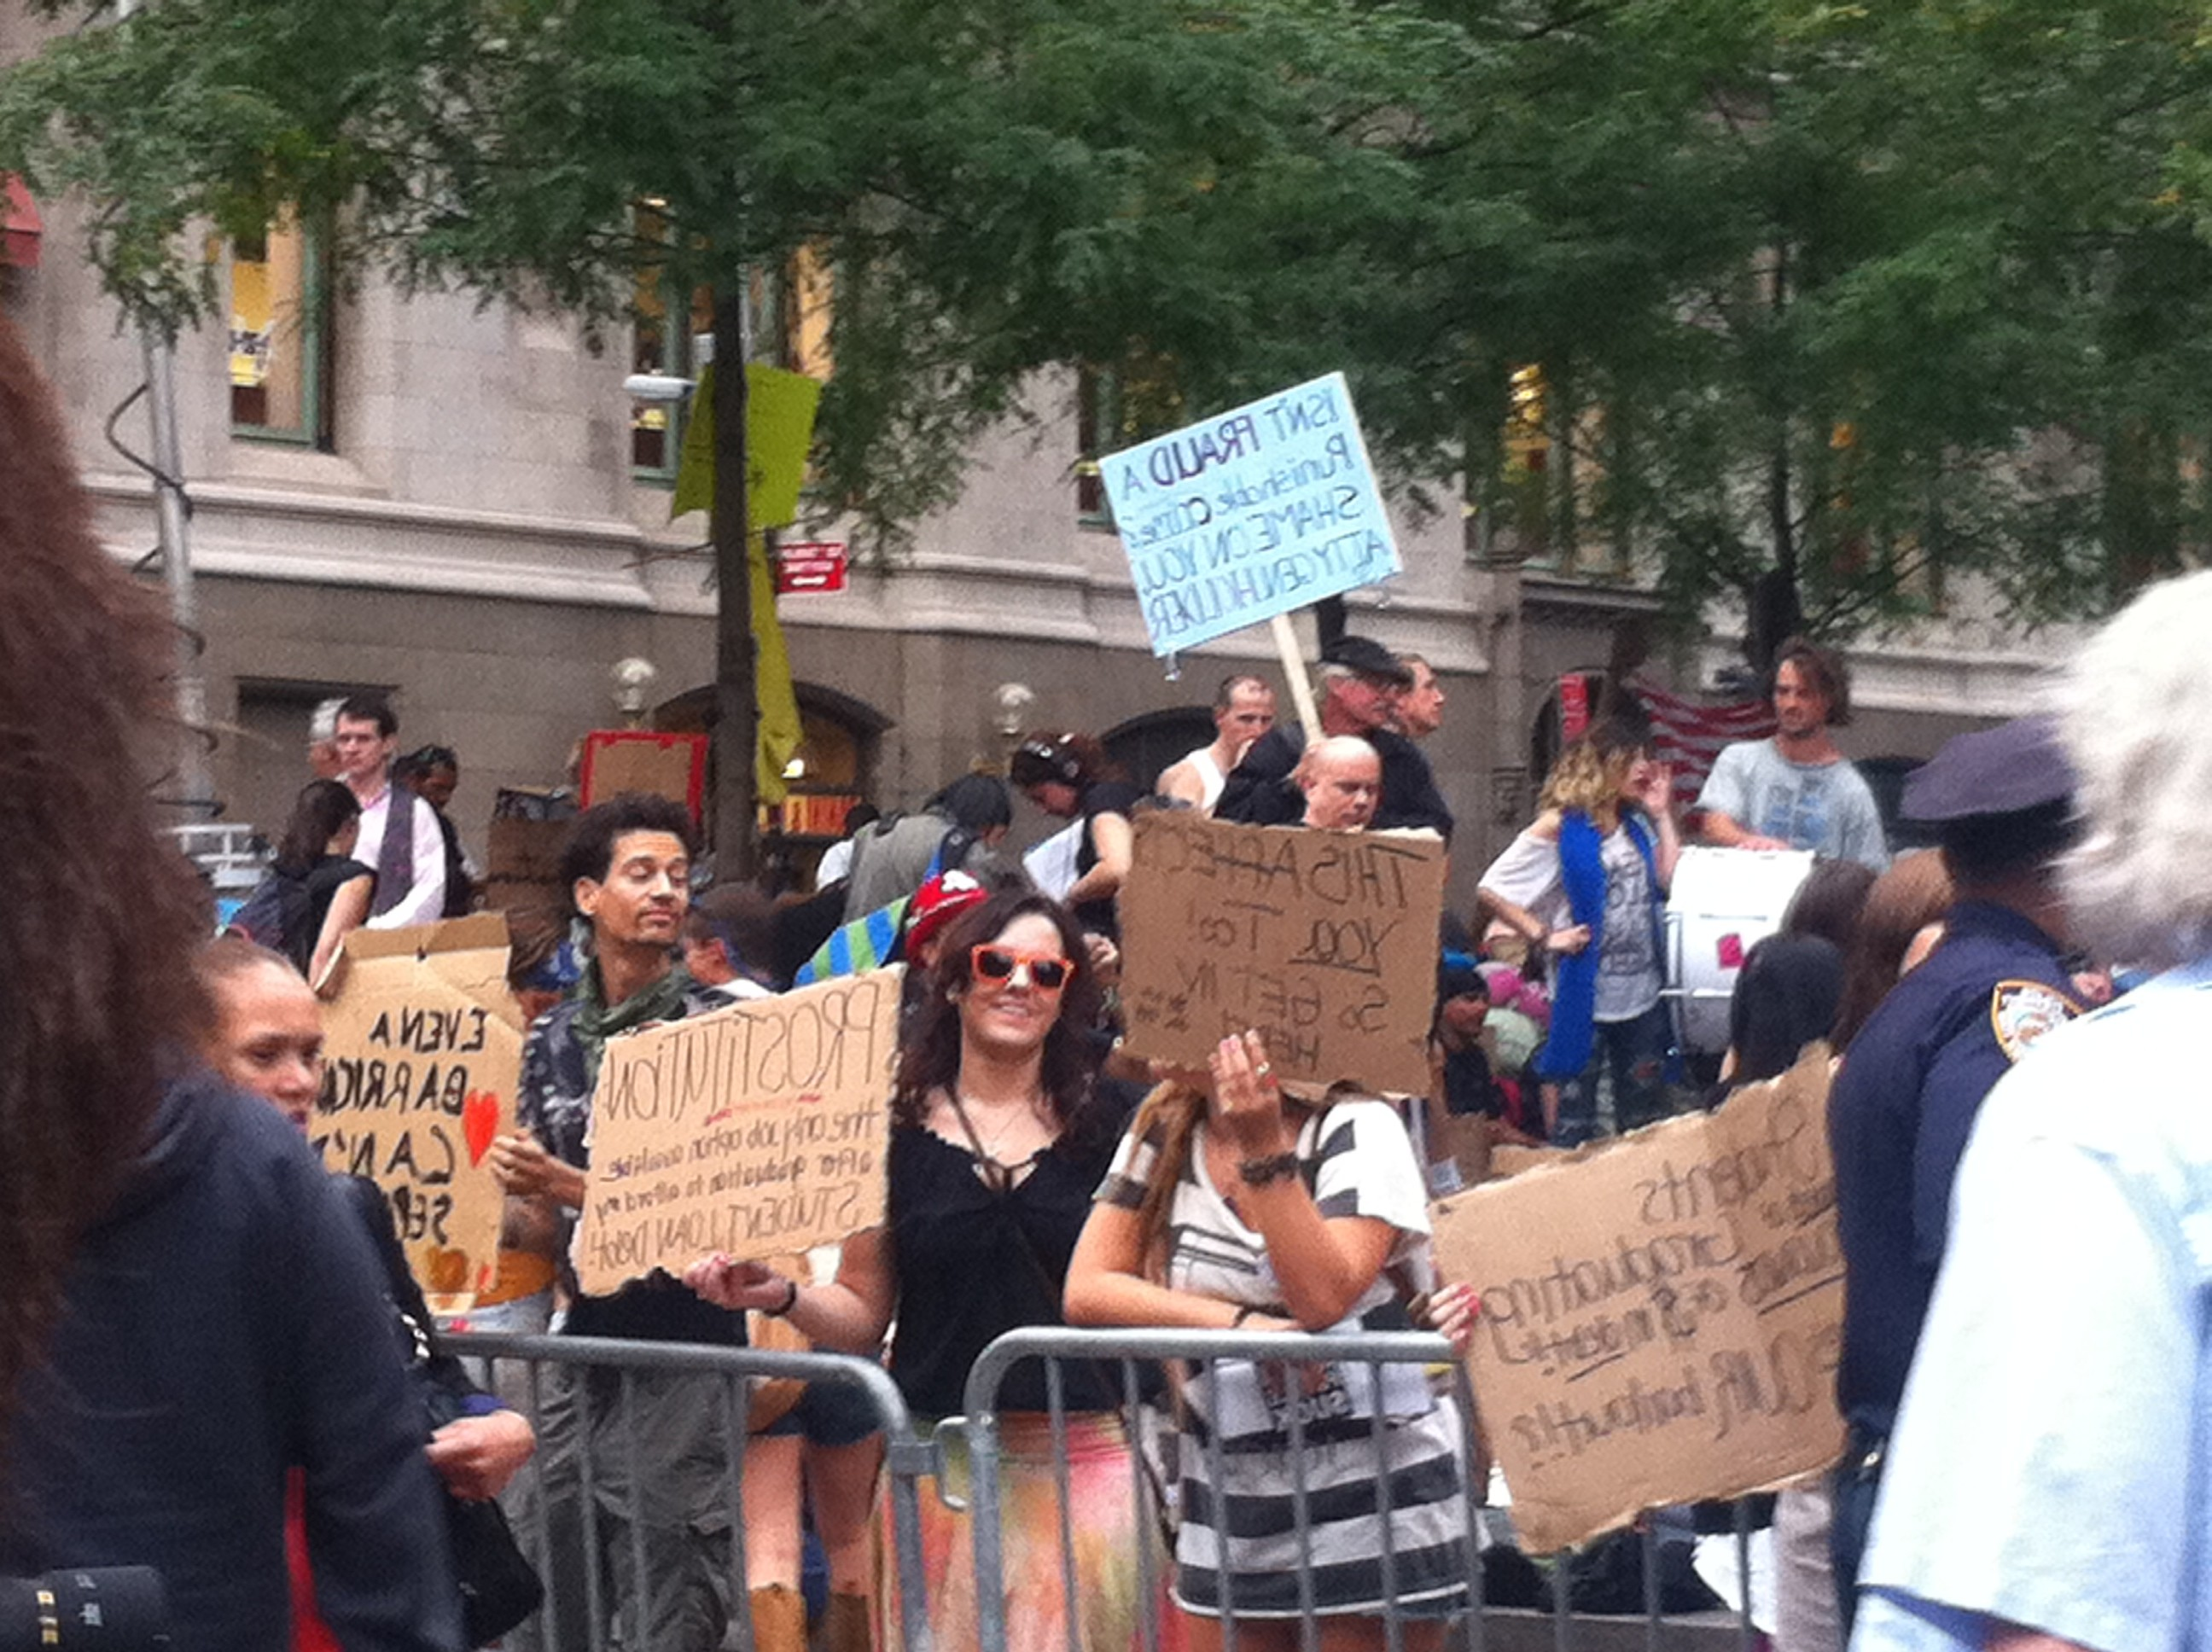 Protest, Occupy Wall Street